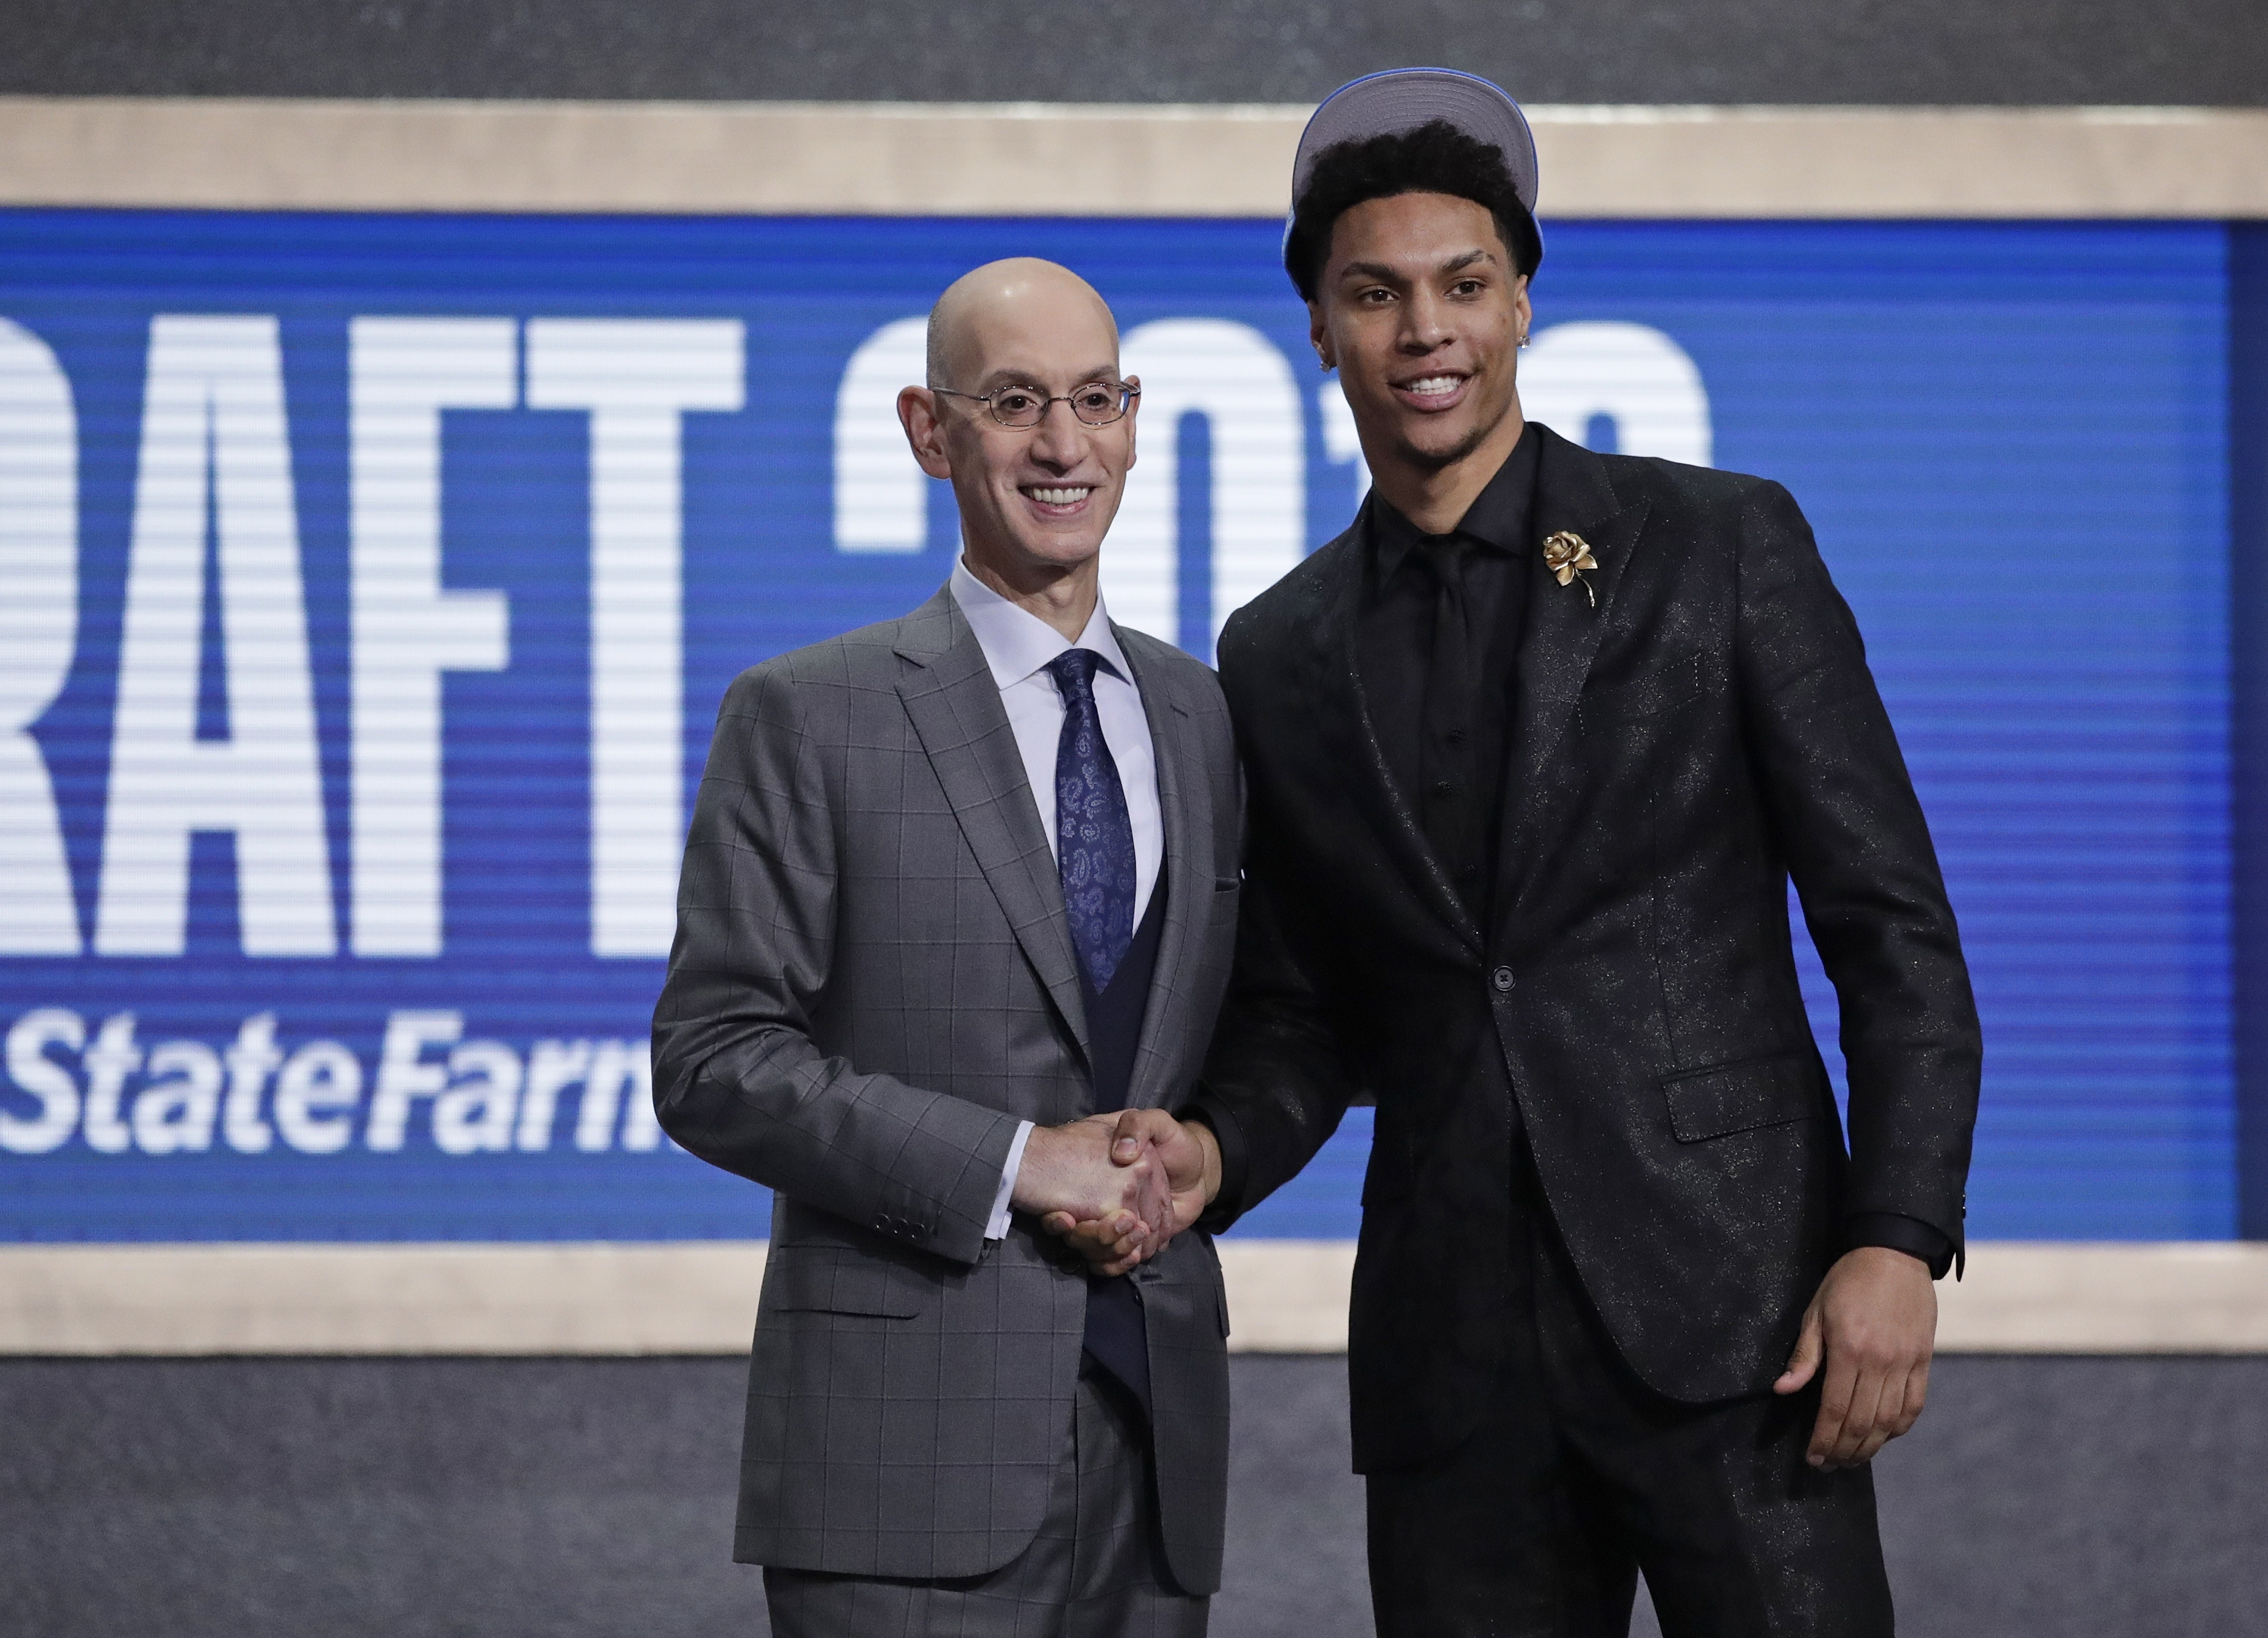 NBA Draft had its share of winners and losers - The Boston Globe